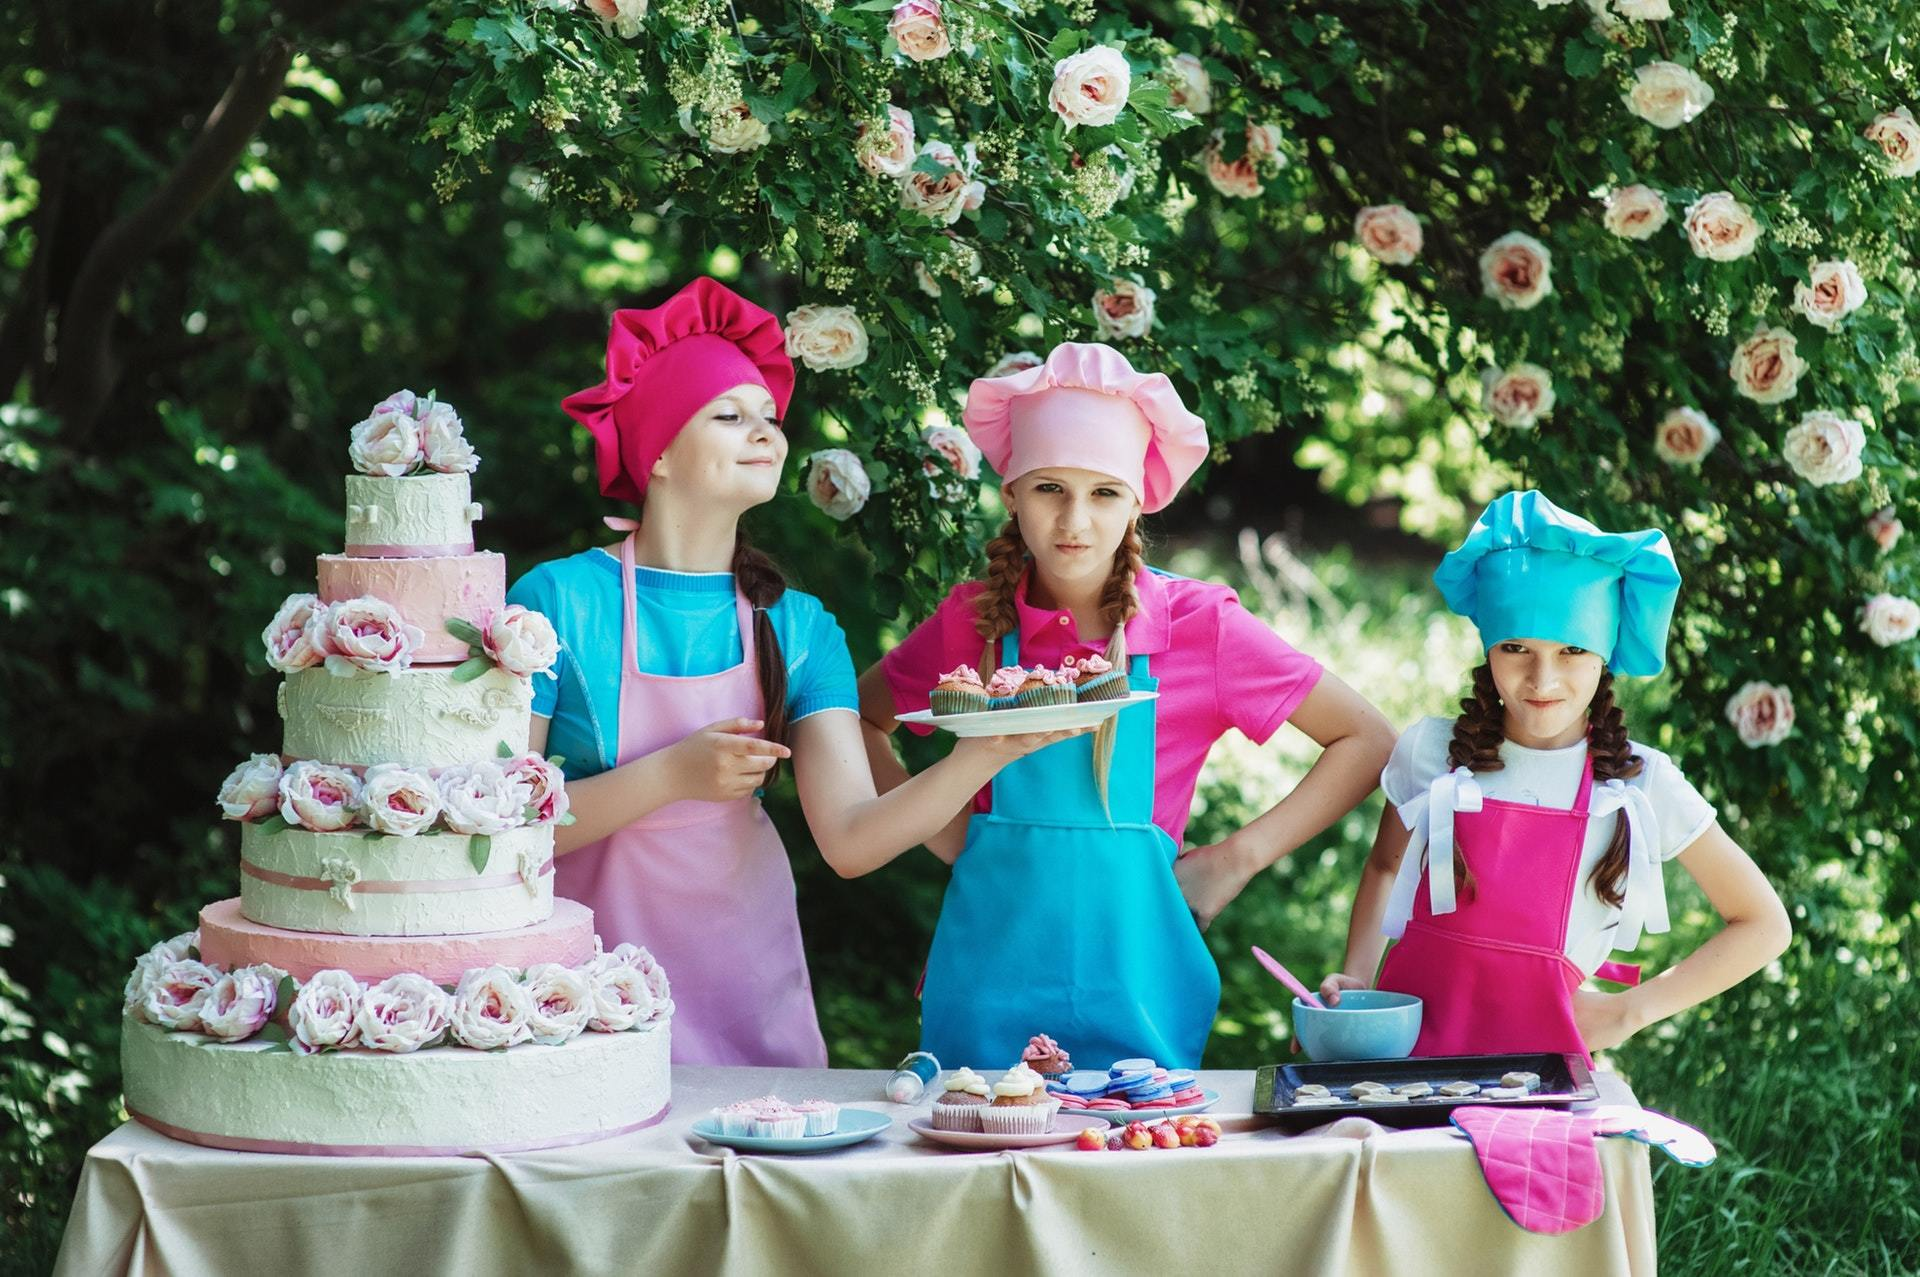 bakers-cake-children-34701 (1).jpg